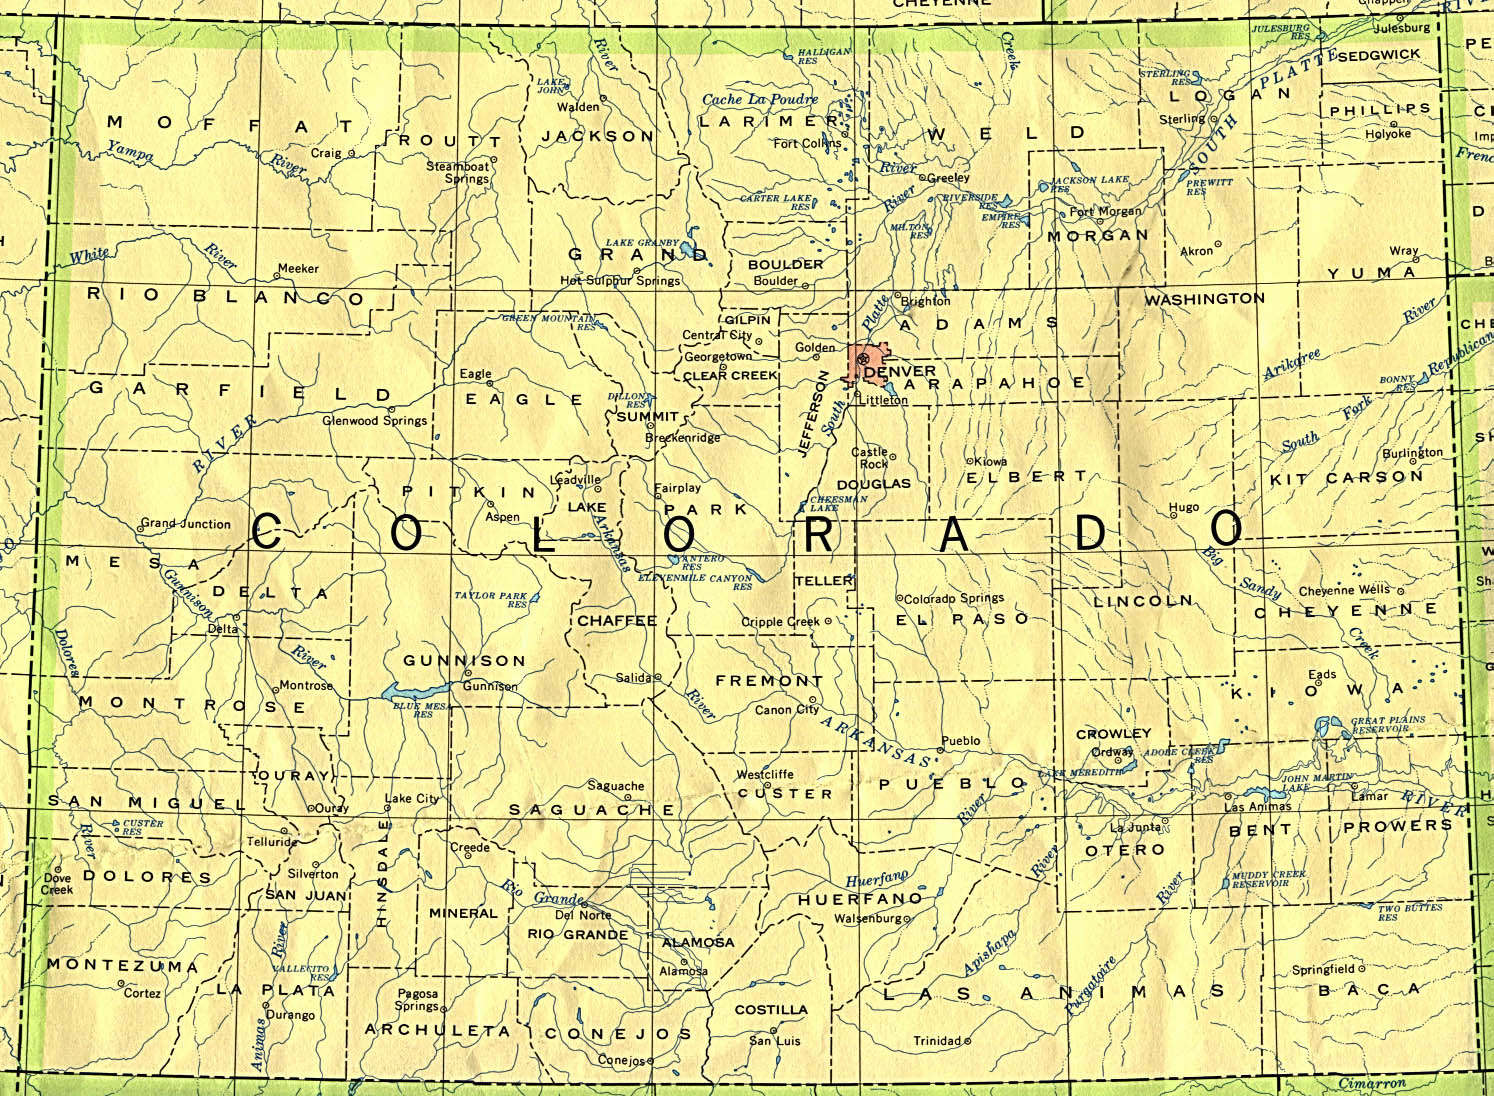 StateMaster - Maps of Colorado (22 in total)